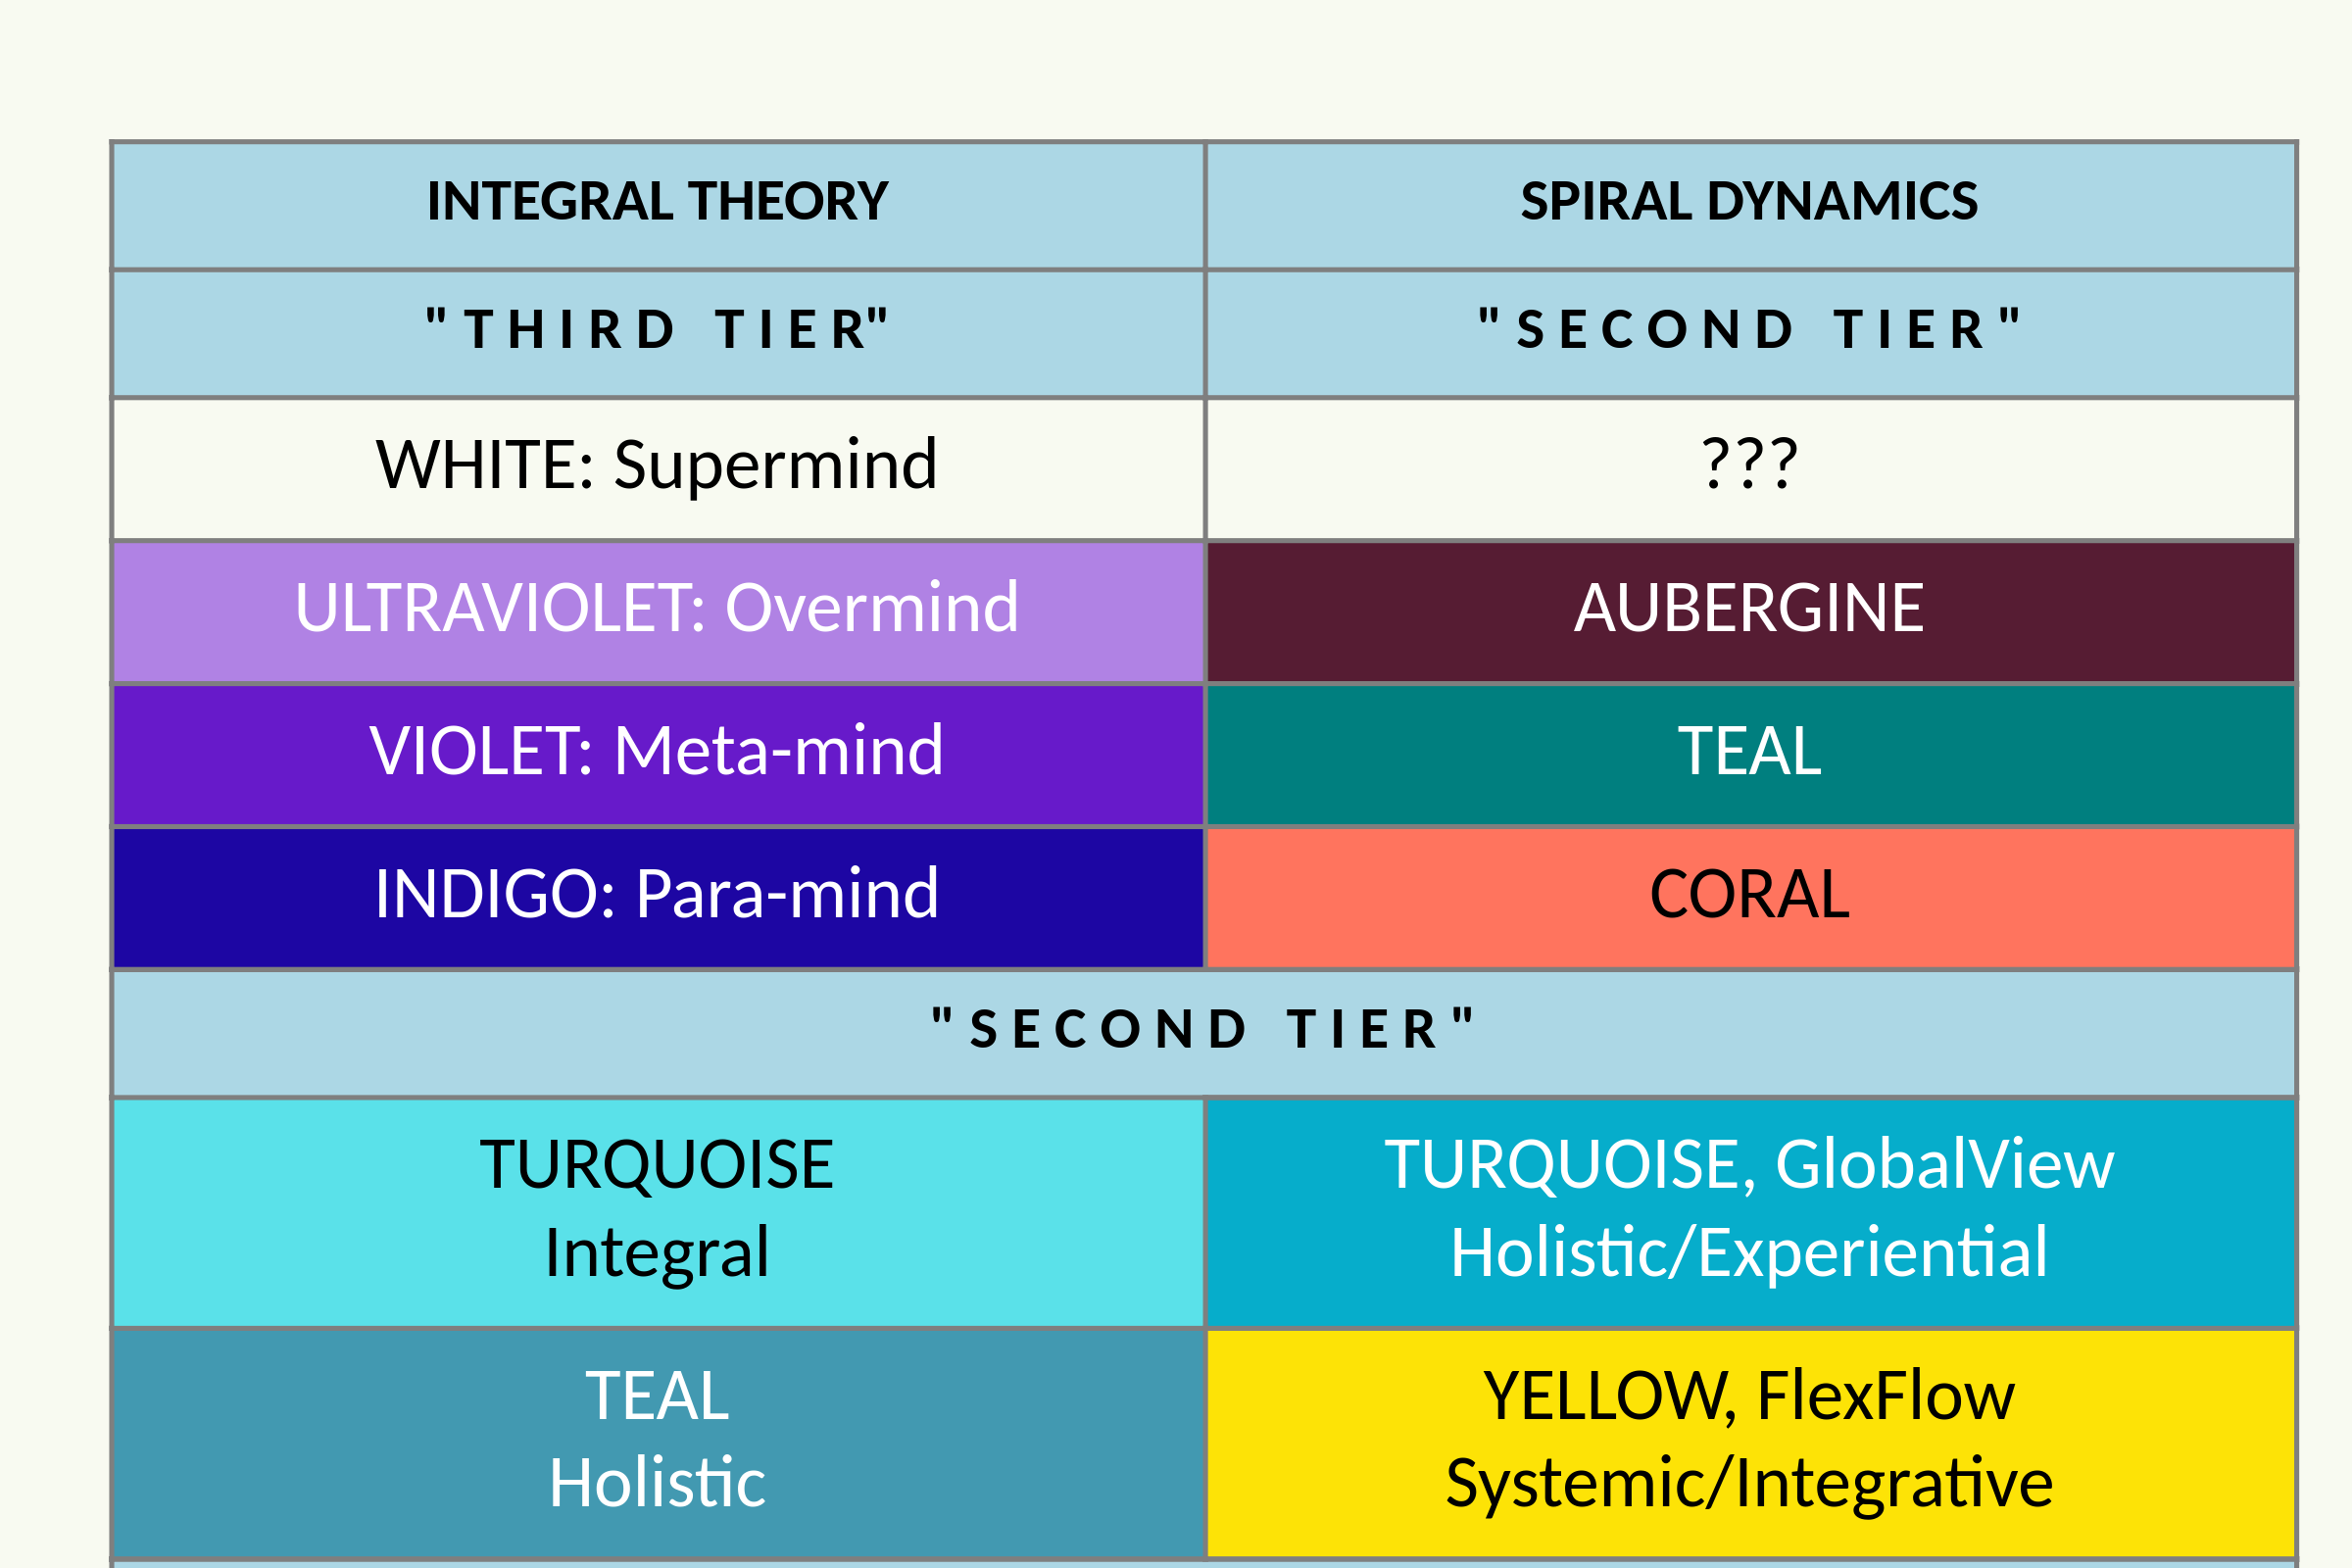 Spiral Dynamics Yellow And Bejond - Second Tier - Spiral Dynamics Model 2nd Tier